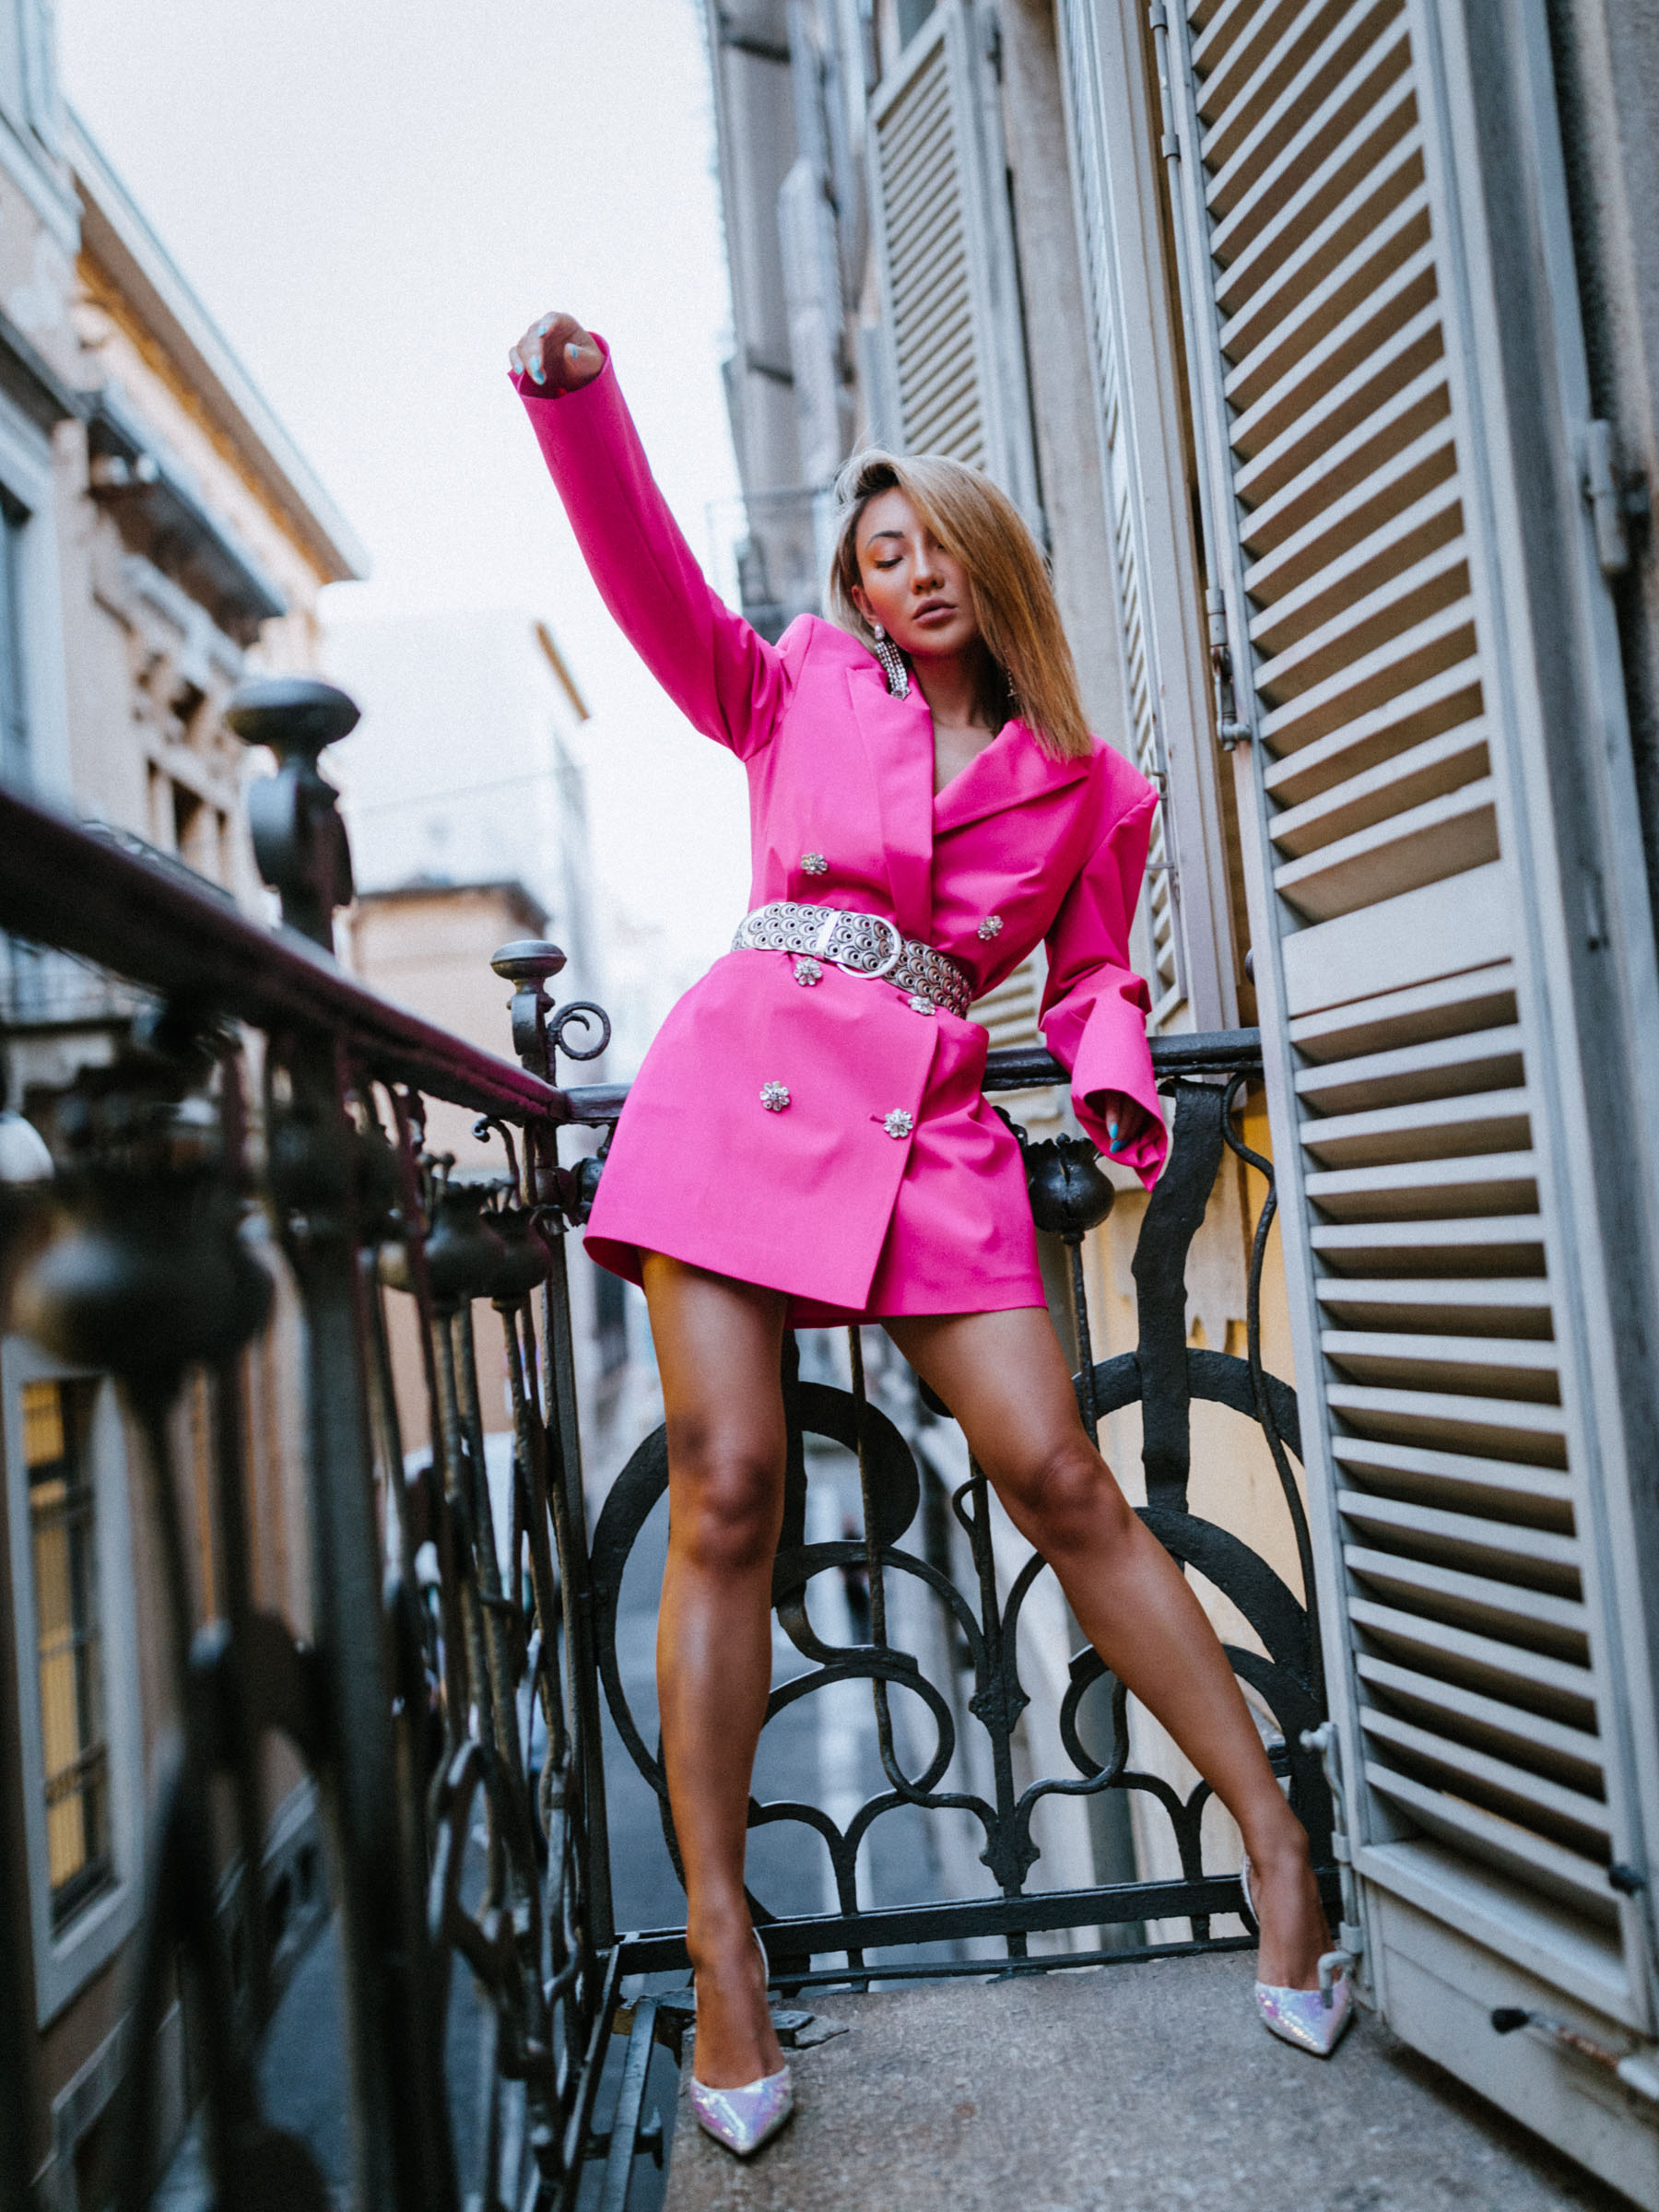 fashion week questions, Hot Pink Attico long line blazer, isabel marant metallic leather belt, dannijo sade chandelier earrings, amina muaddi slingback pumps // Notjessfashion.com